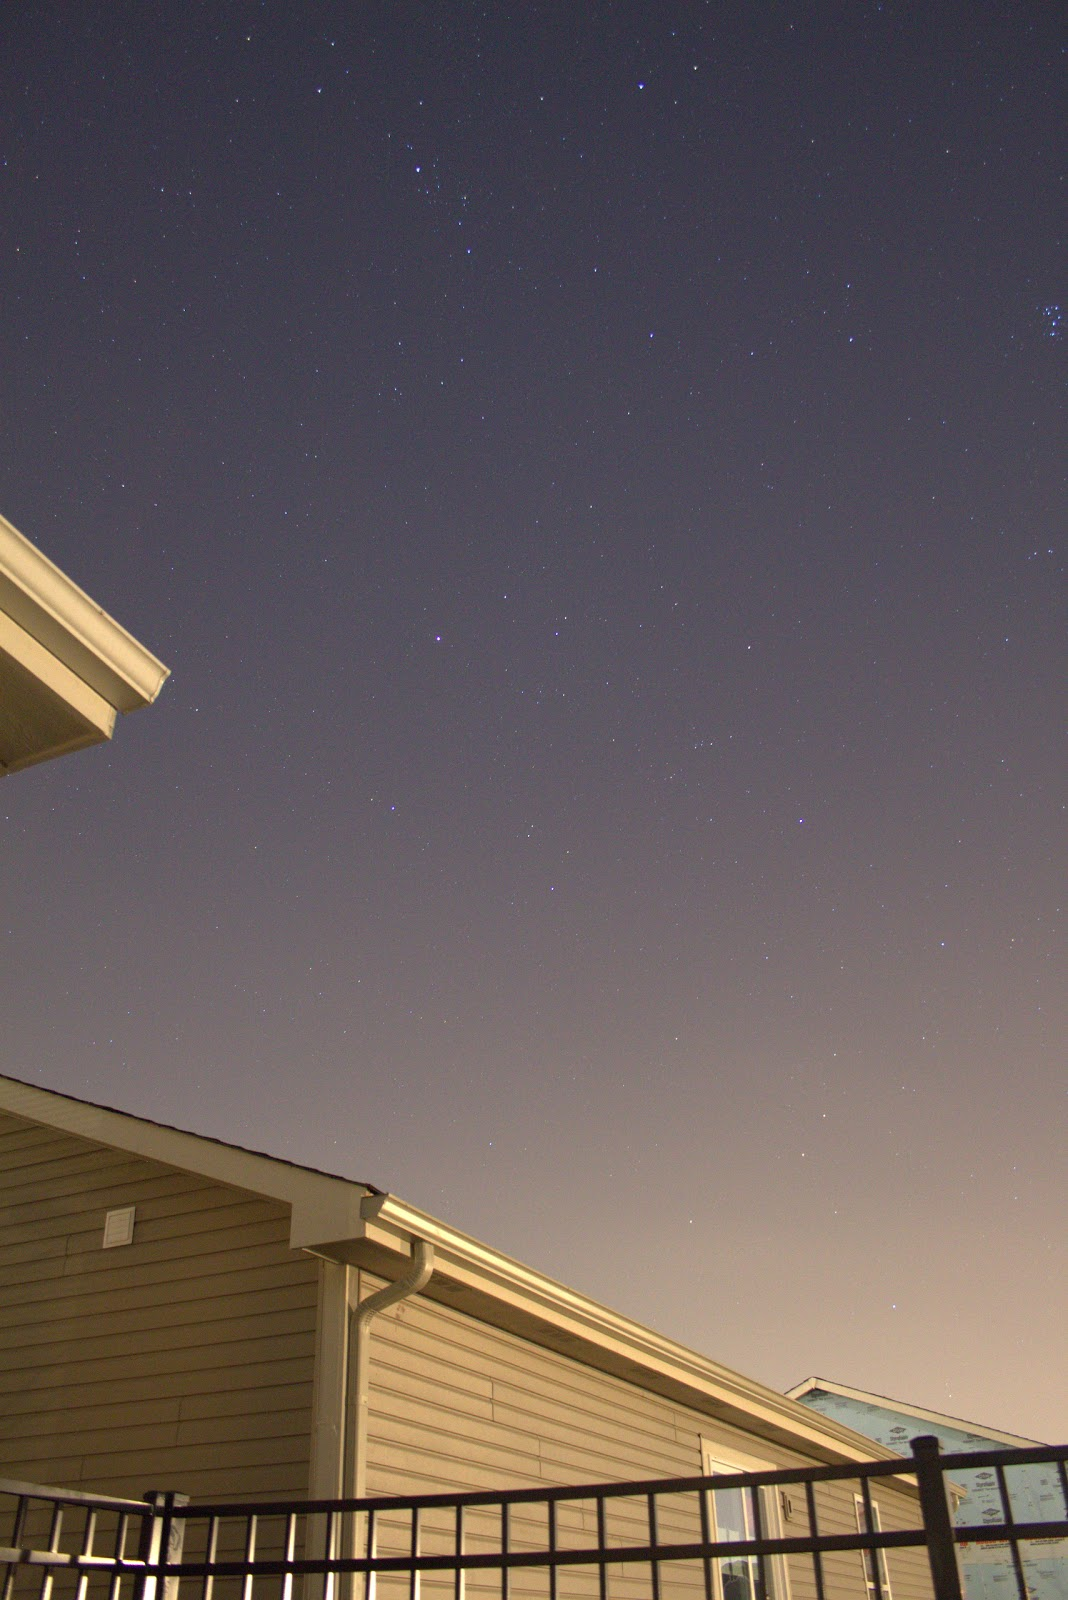 perseus constellation over house